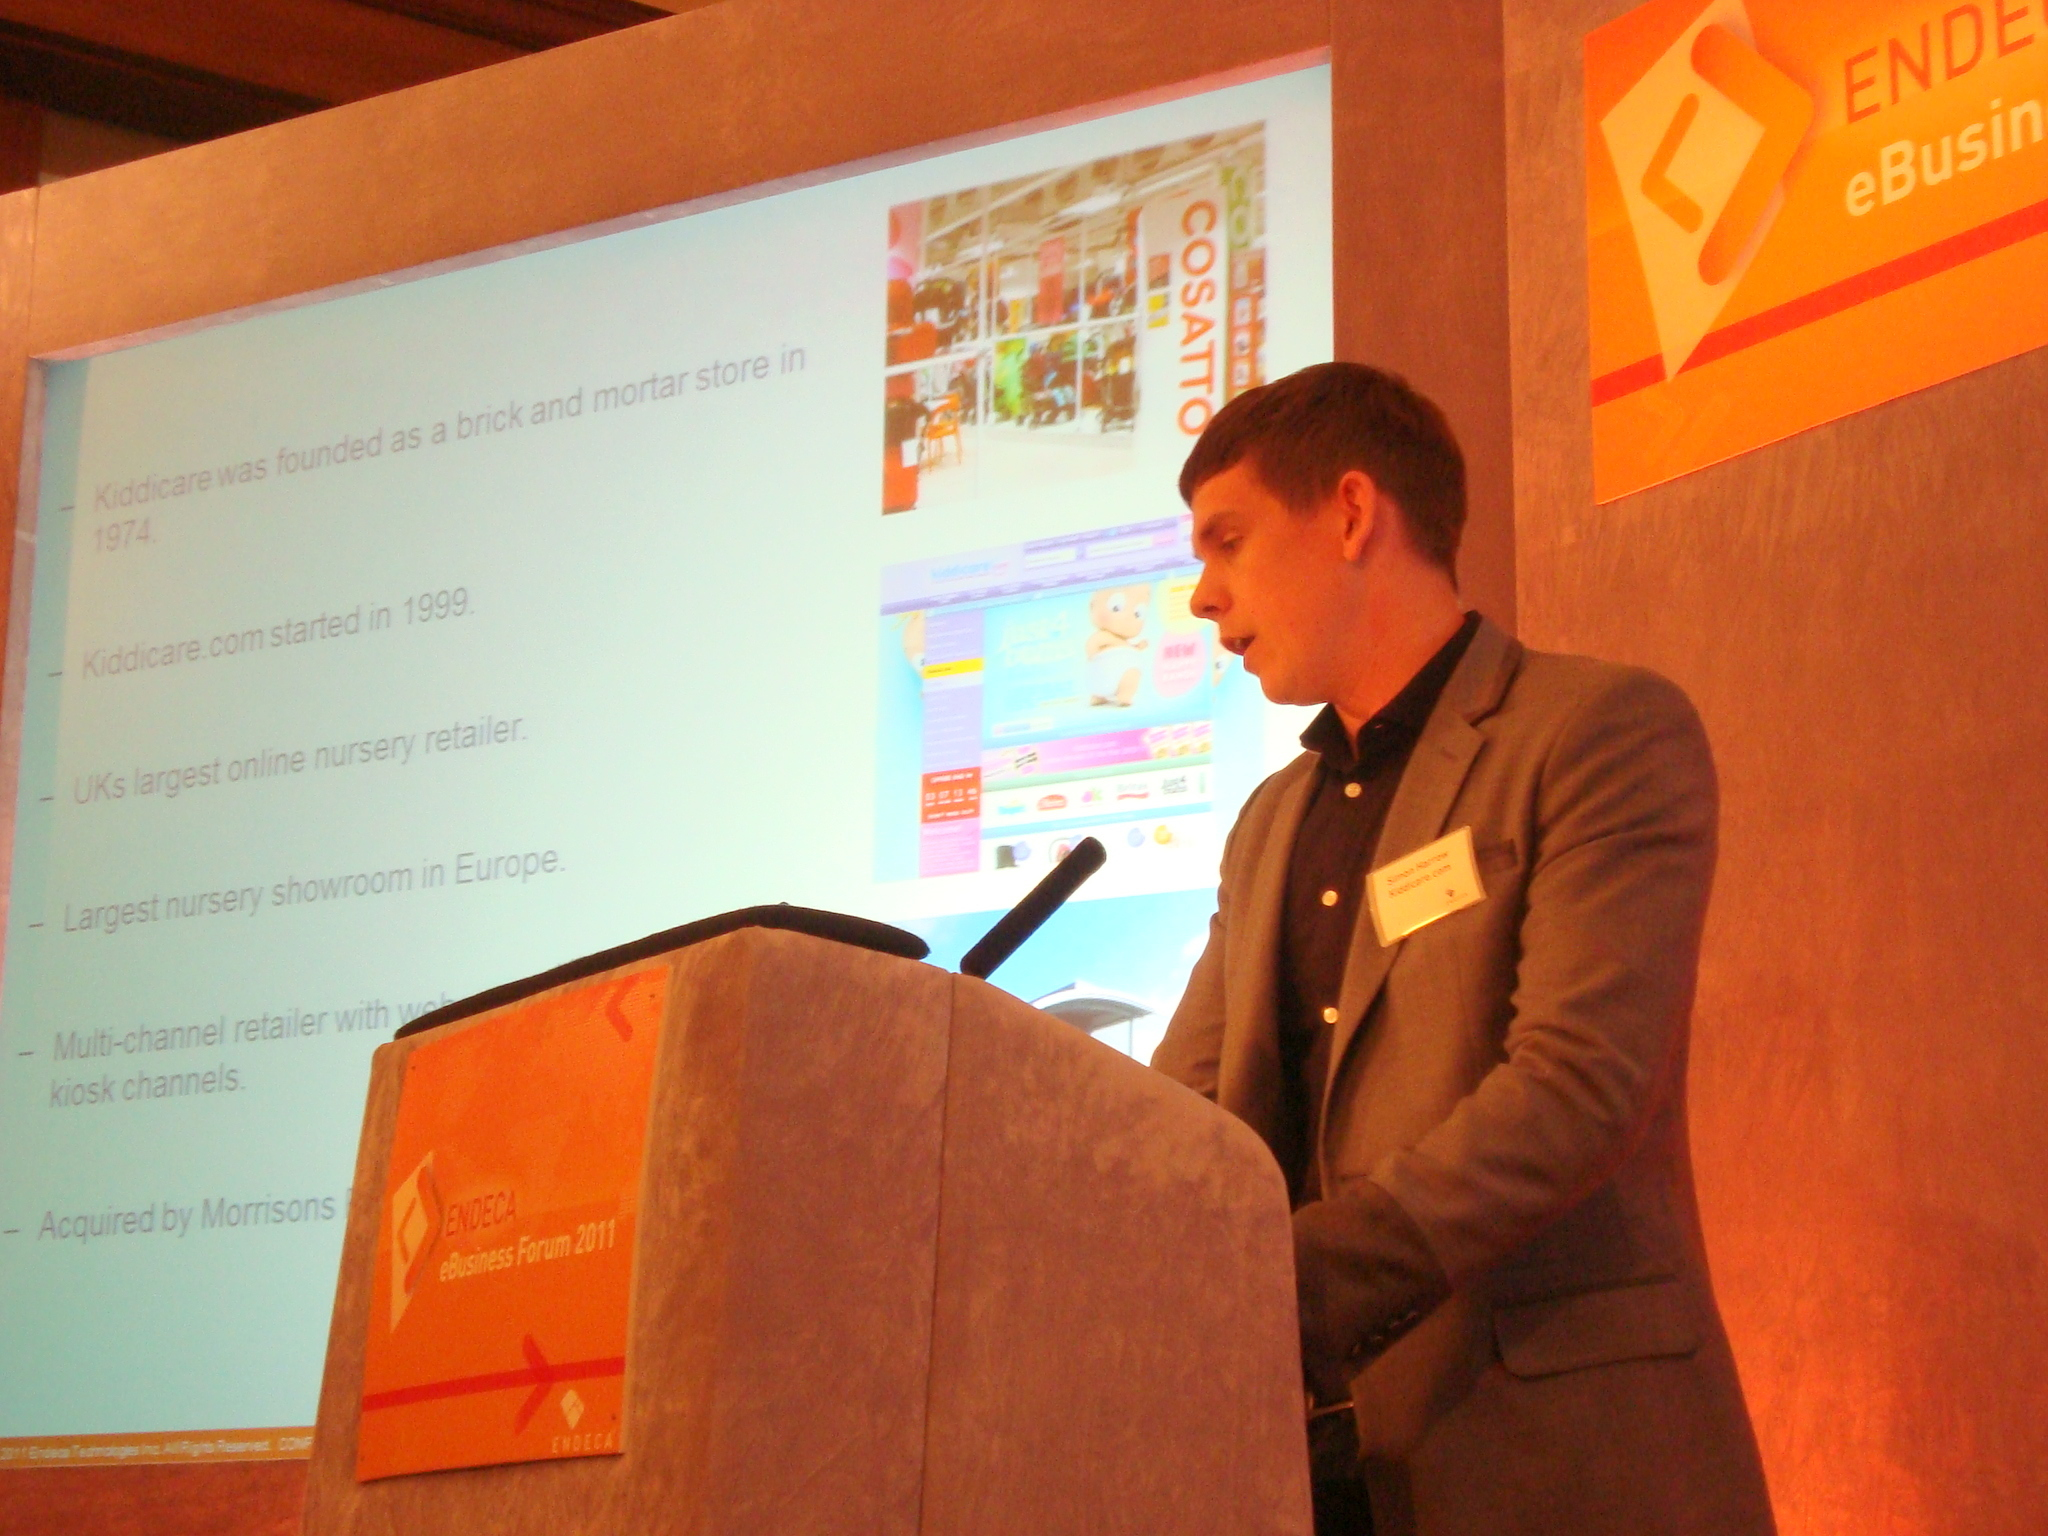 Kiddicare.com's Simon Harrow speaking about omni channel world at the Endeca eBusiness Forum 2011